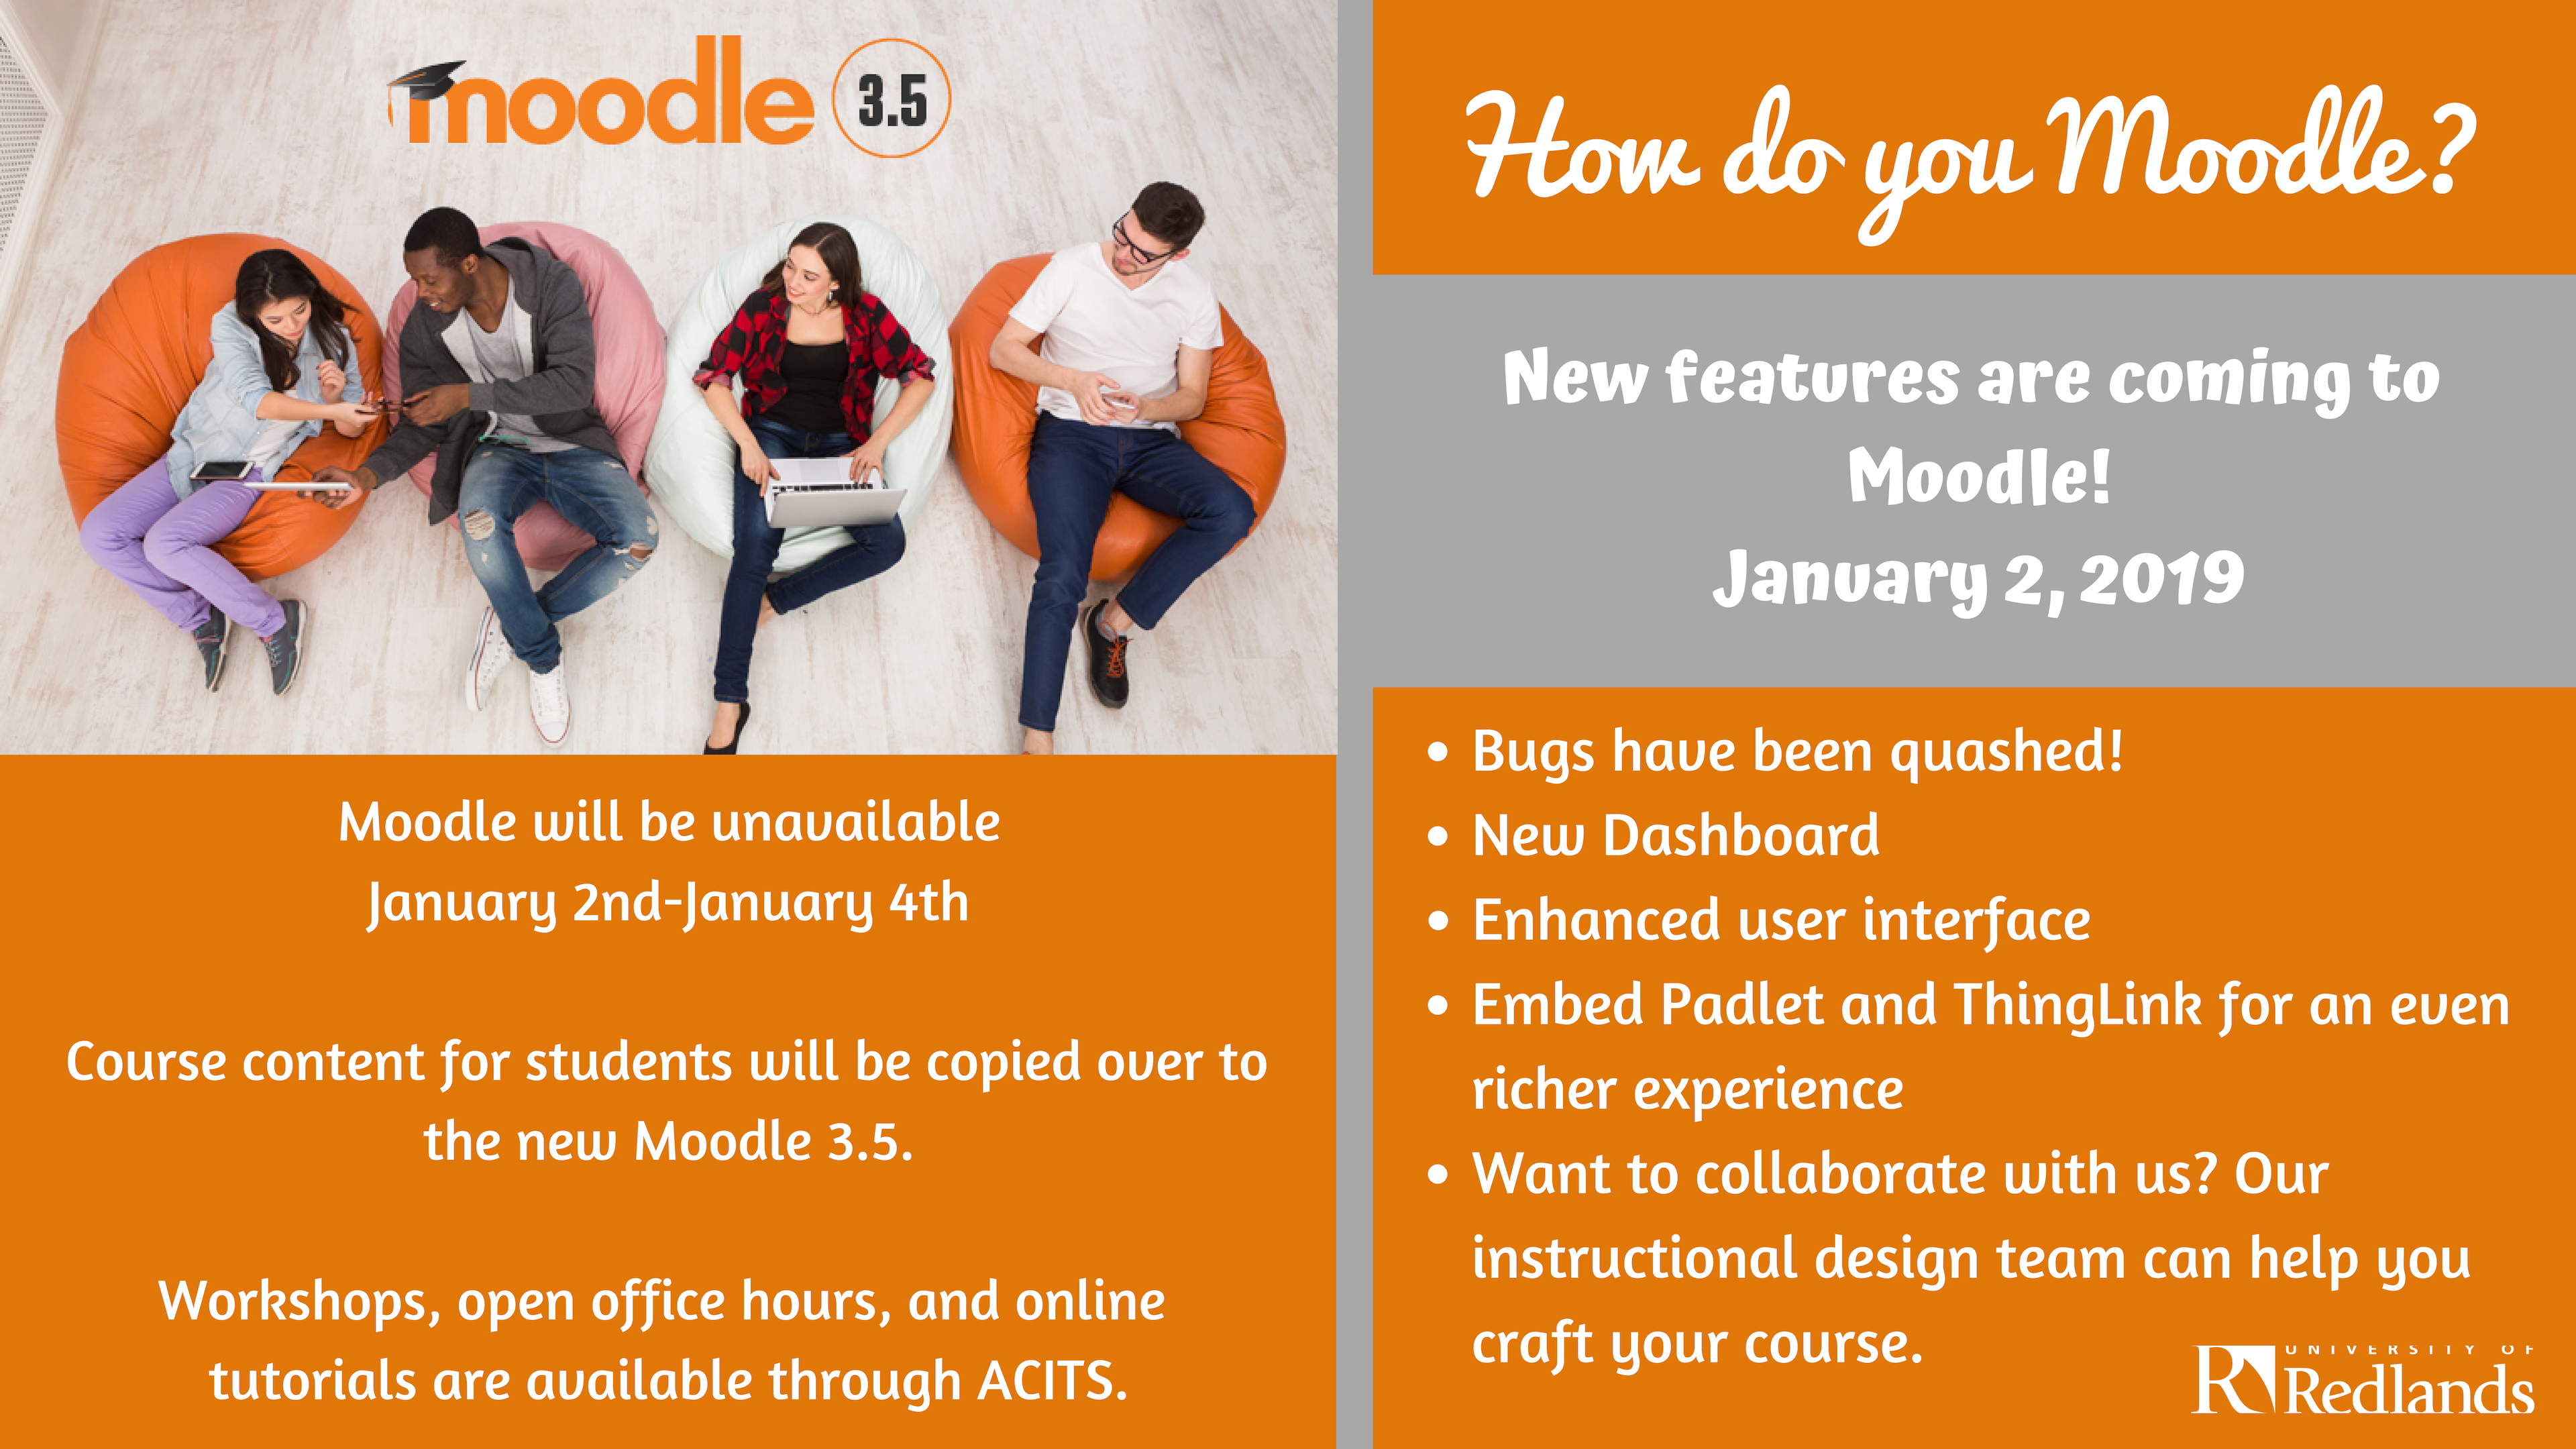 Moodle will be unavailable January second through January fourth.